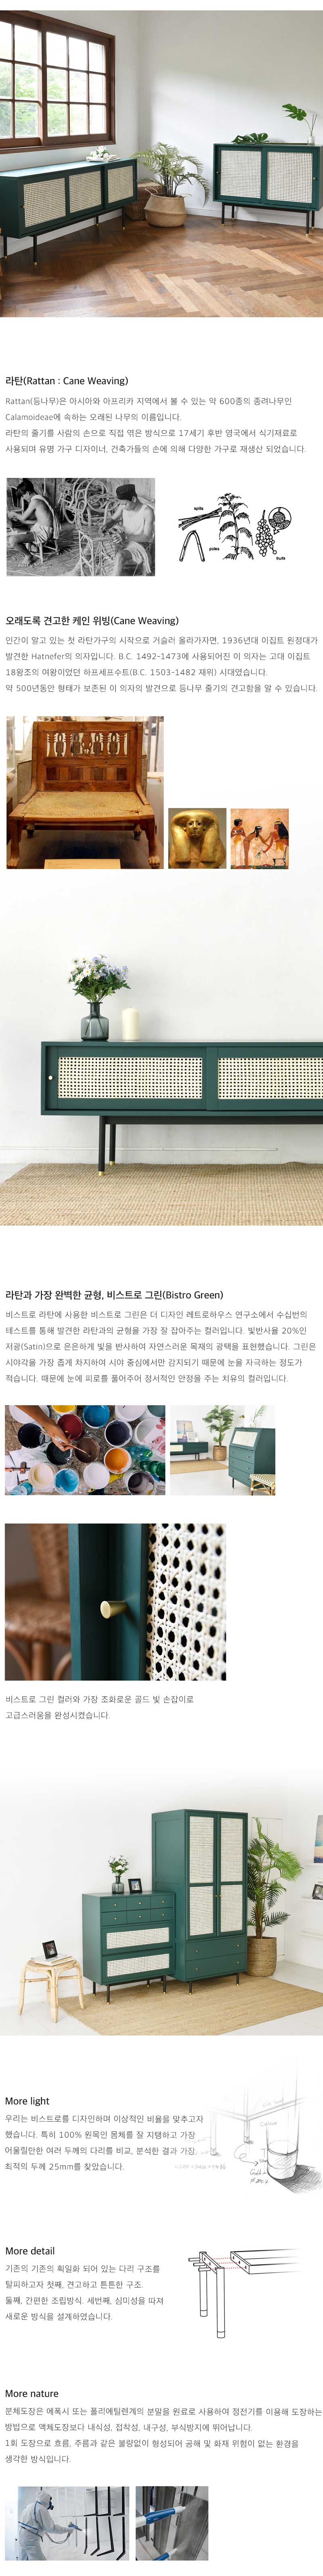 Bistro_Rattan_Chest_of_Drawers_specs_by_born_in_colour